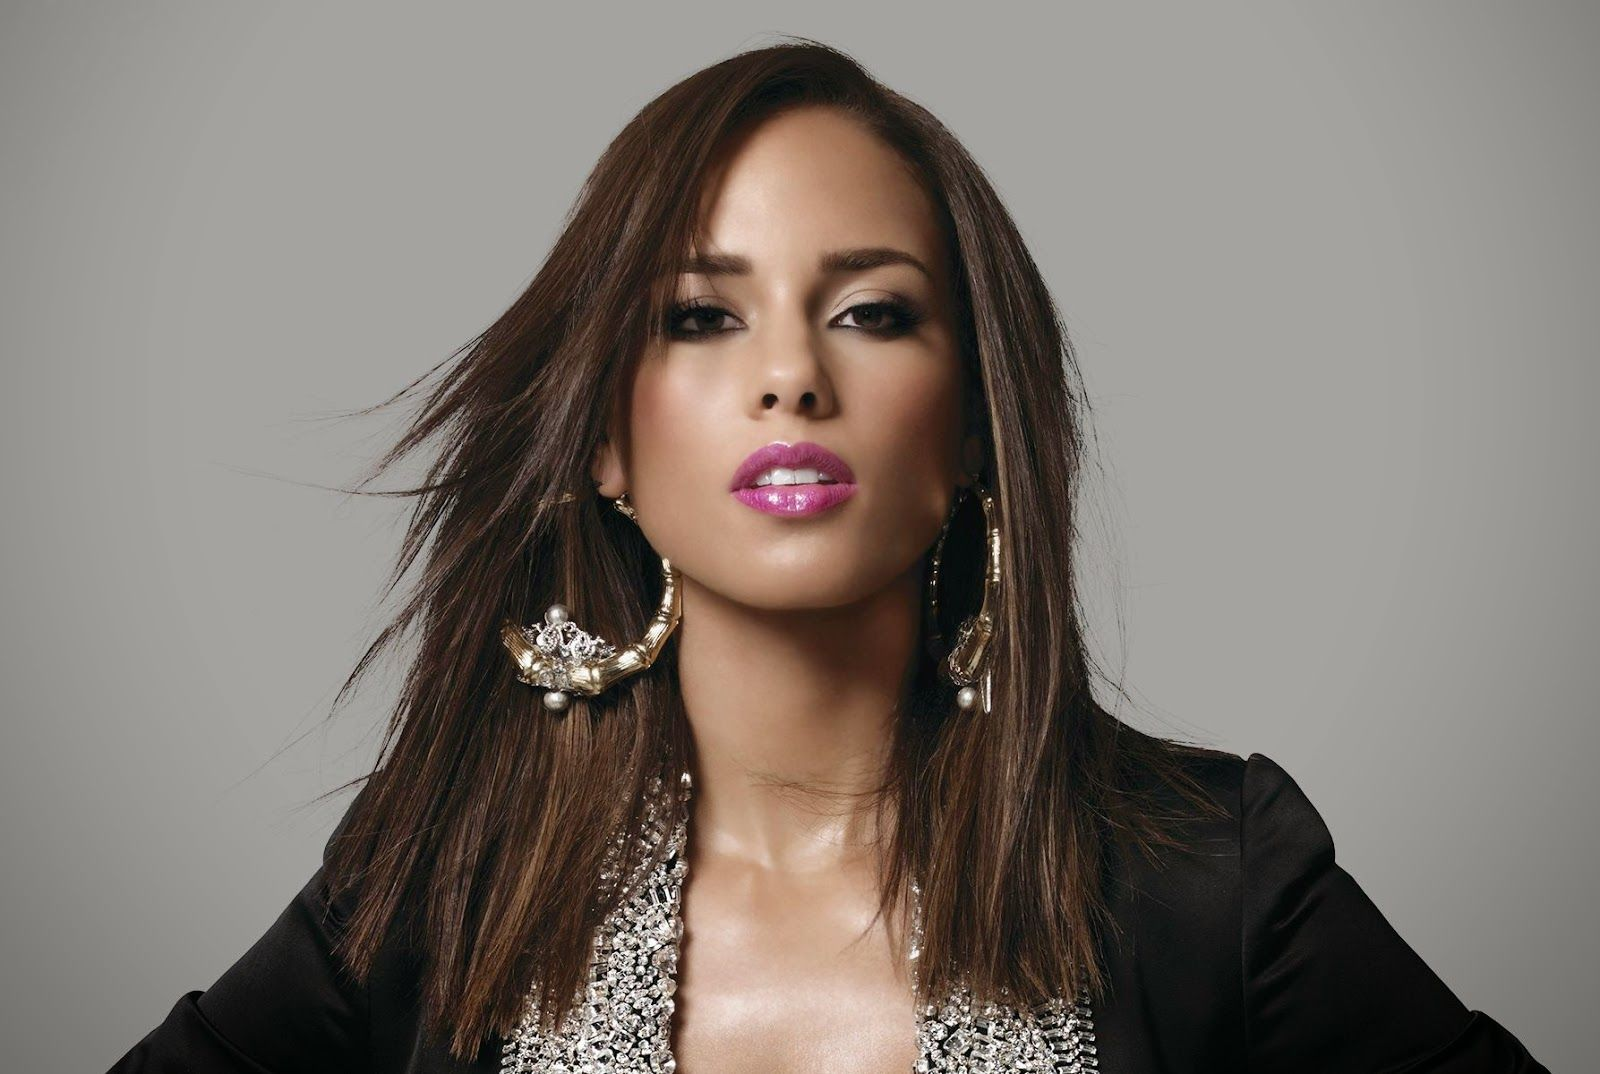 1600x1074 Hollywood Actress Wallpaper: Alicia Keys Wallpapers